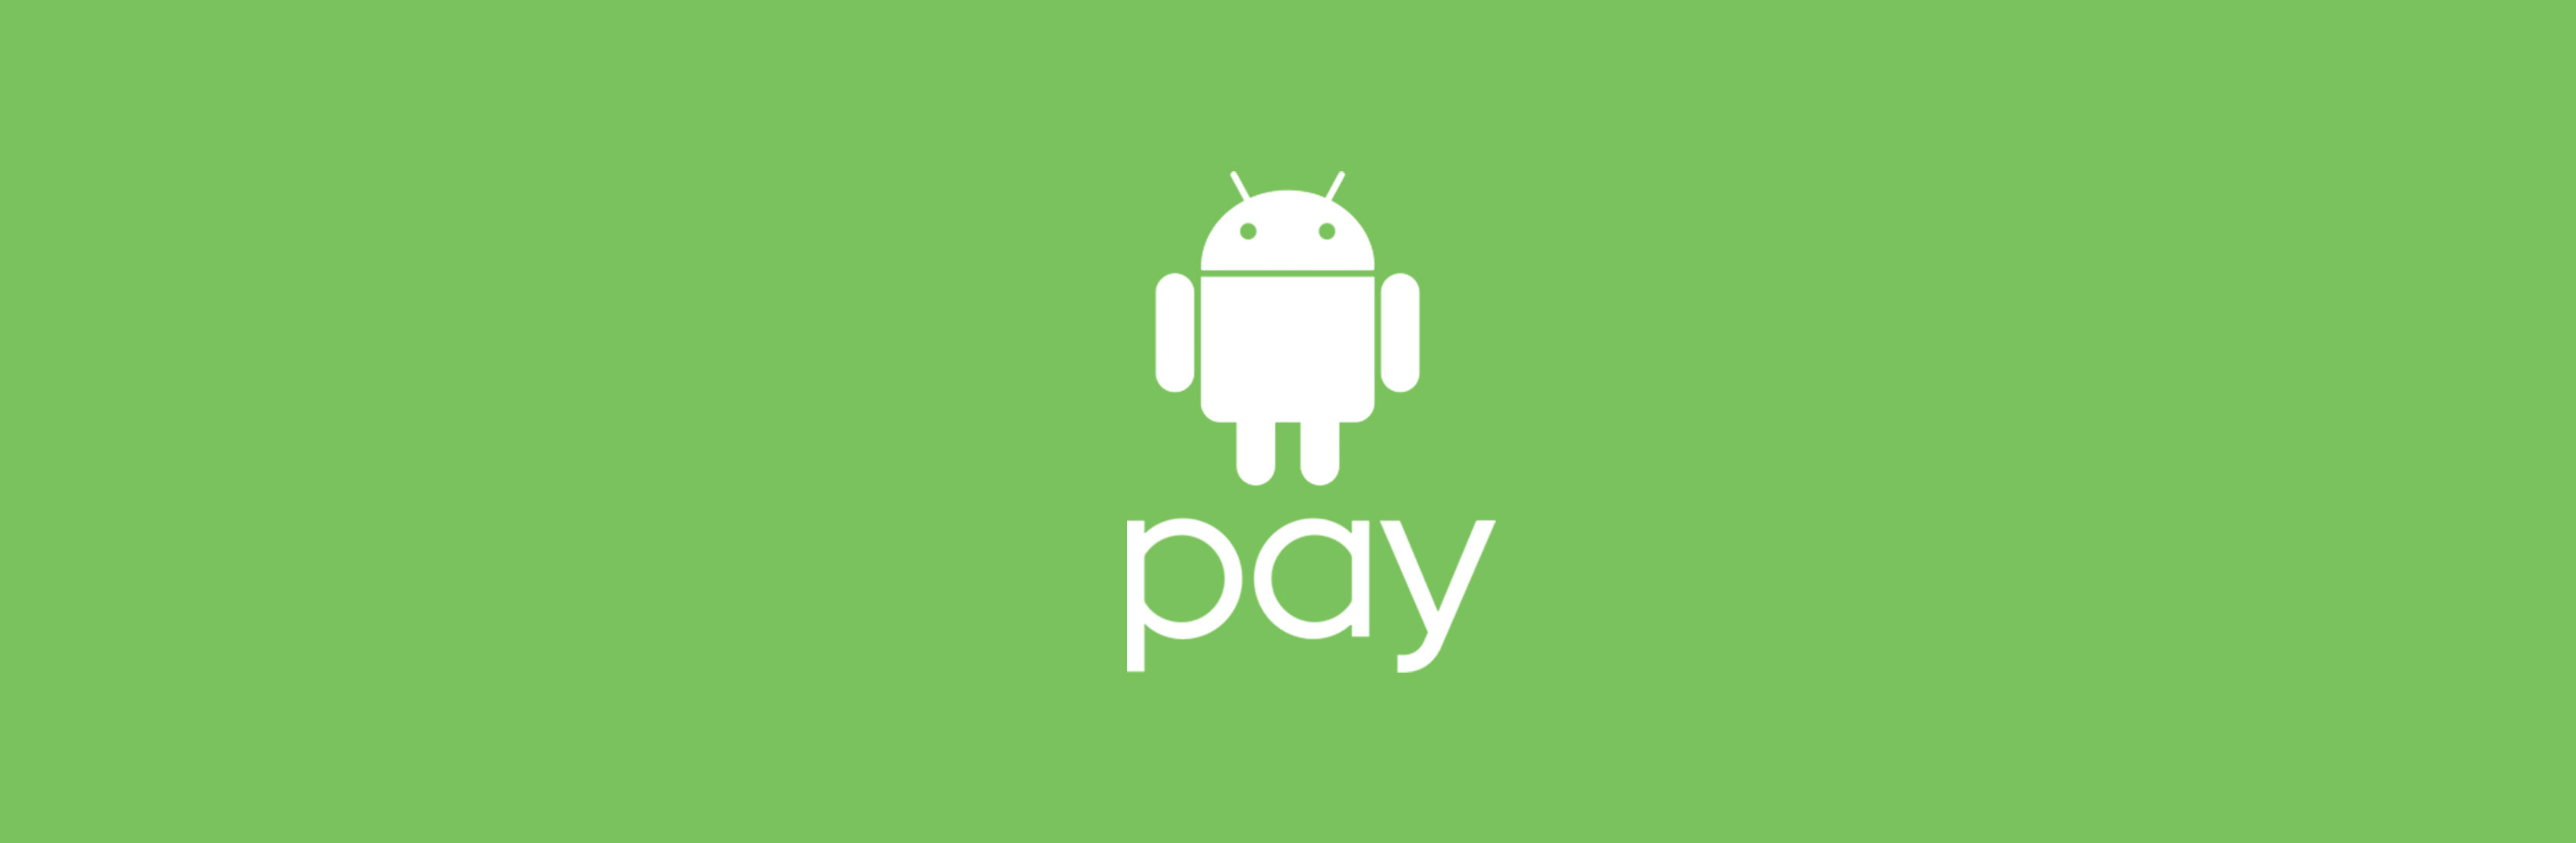 Supporting Android Pay as it's Unveiled at Google I/O